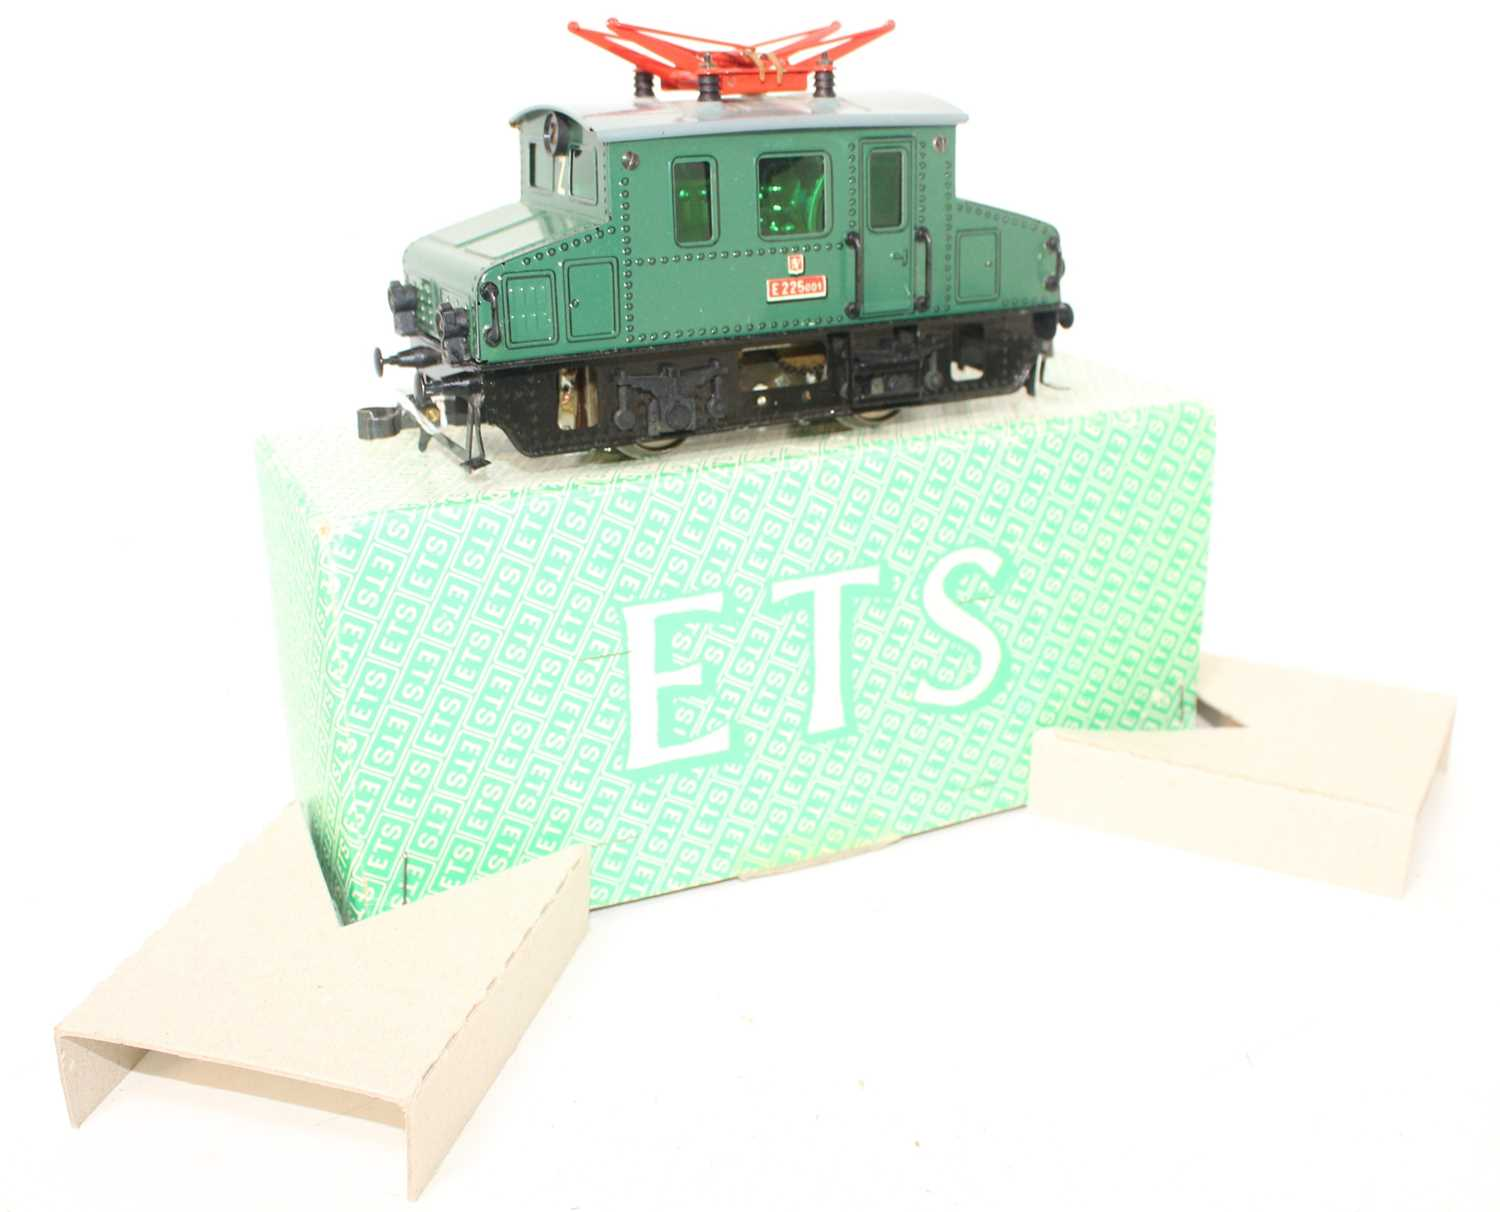 ETS 0-4-0 Electric Centre Car Loco E225001 Green Body, black chassis, grey roof, red pantographs (